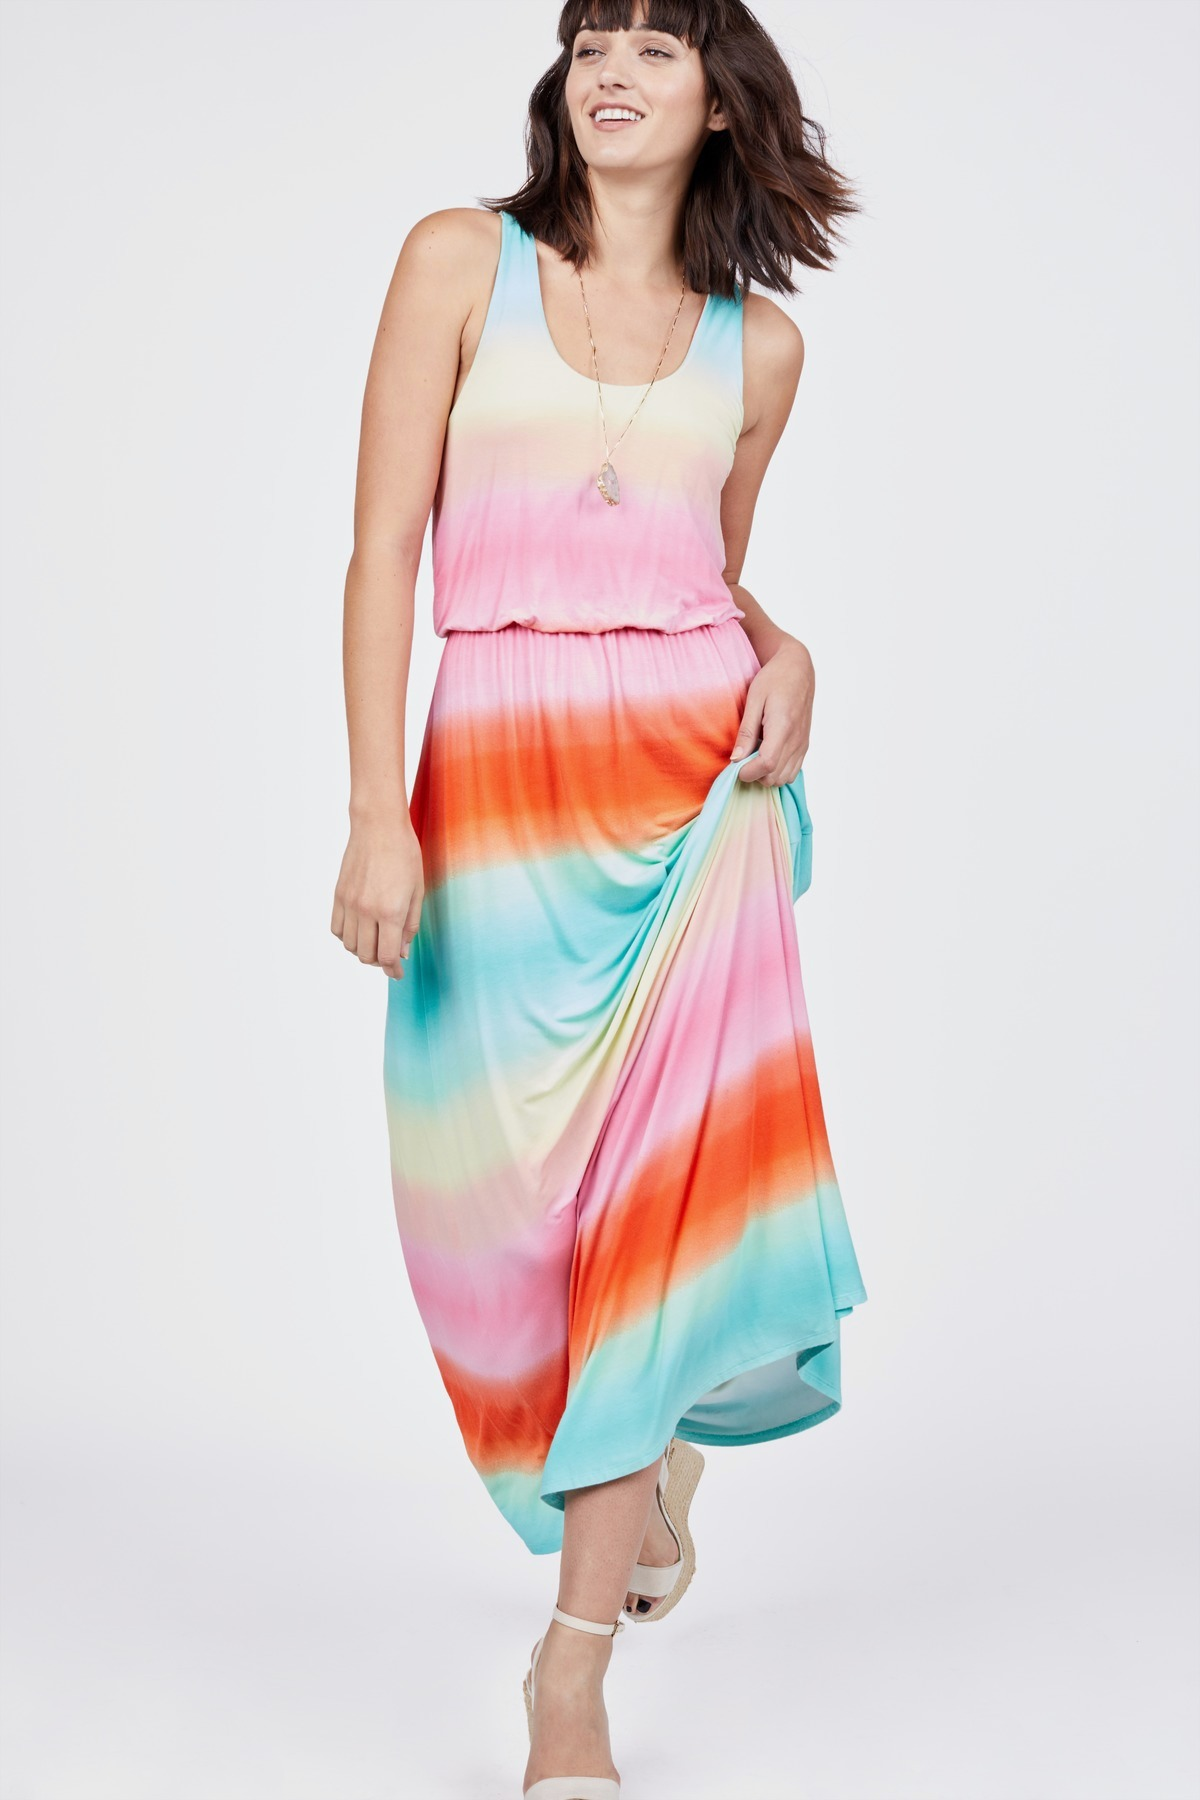 Rainbow Maxi Dress By Chelsea Theodore Rent Clothes With Le Tote